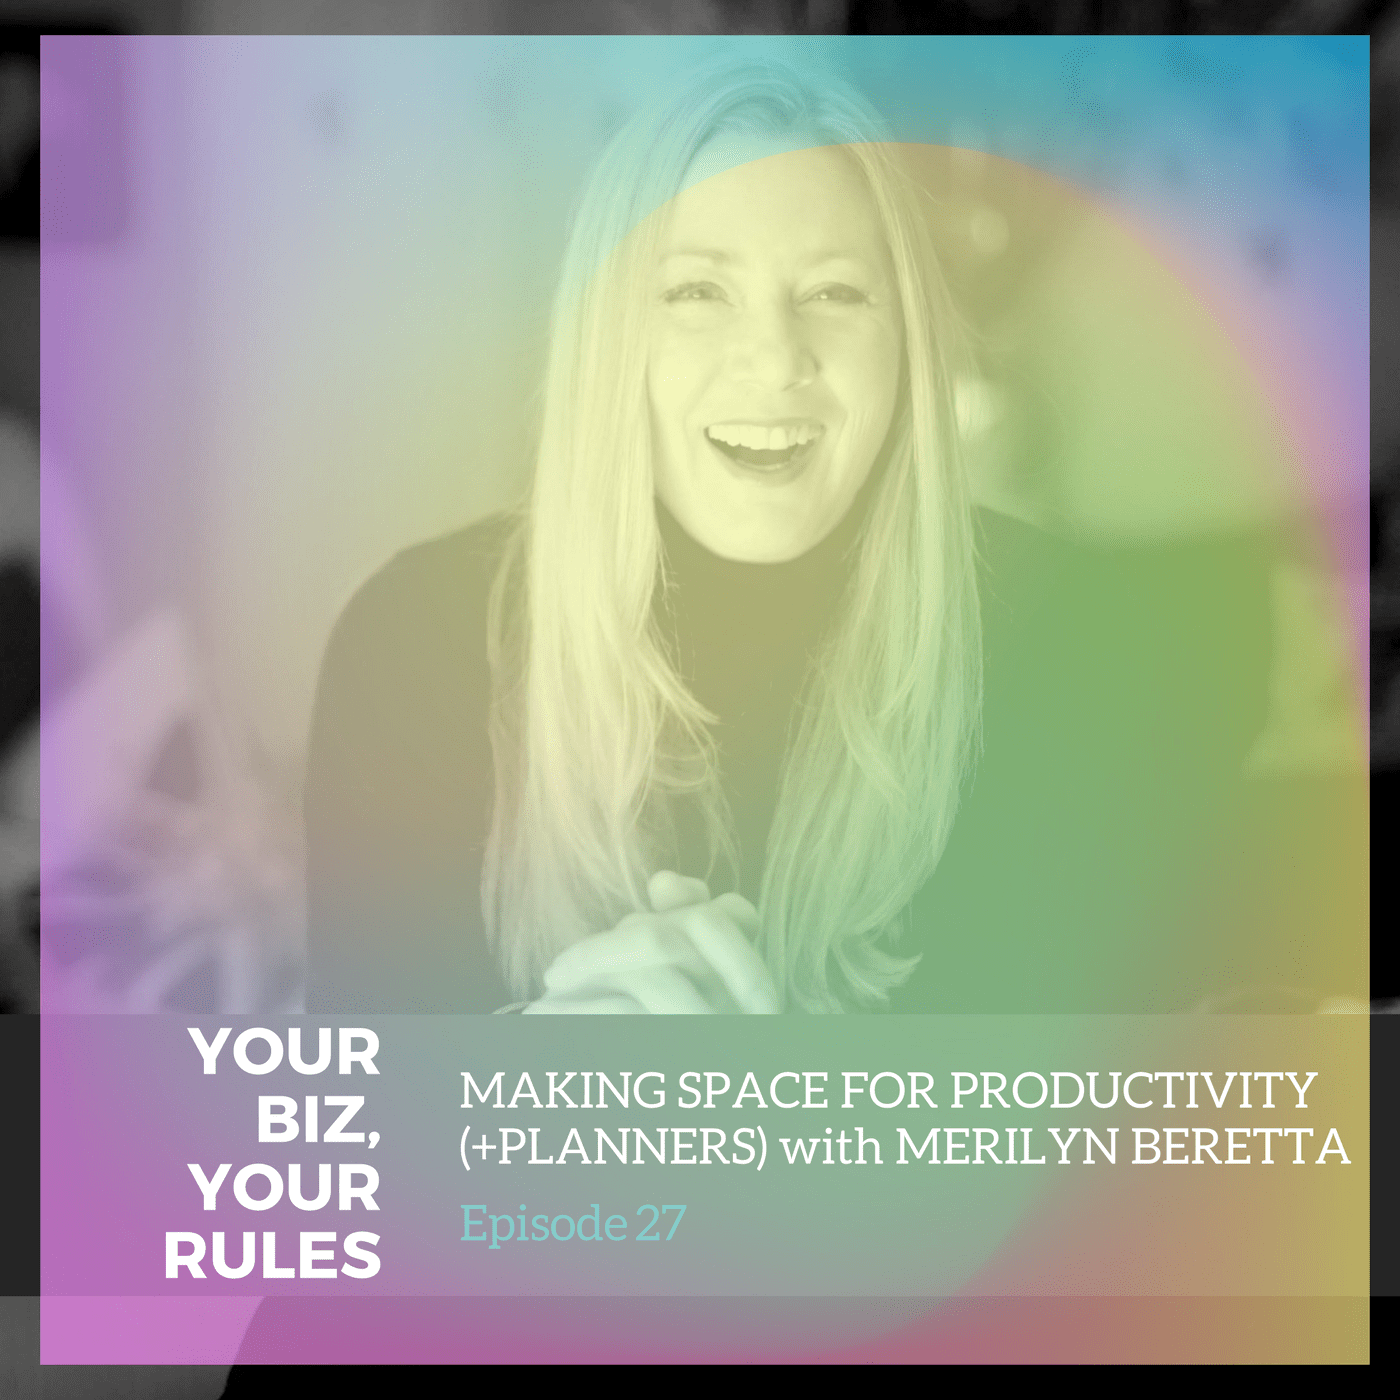 EP 27: Making Space for Productivity